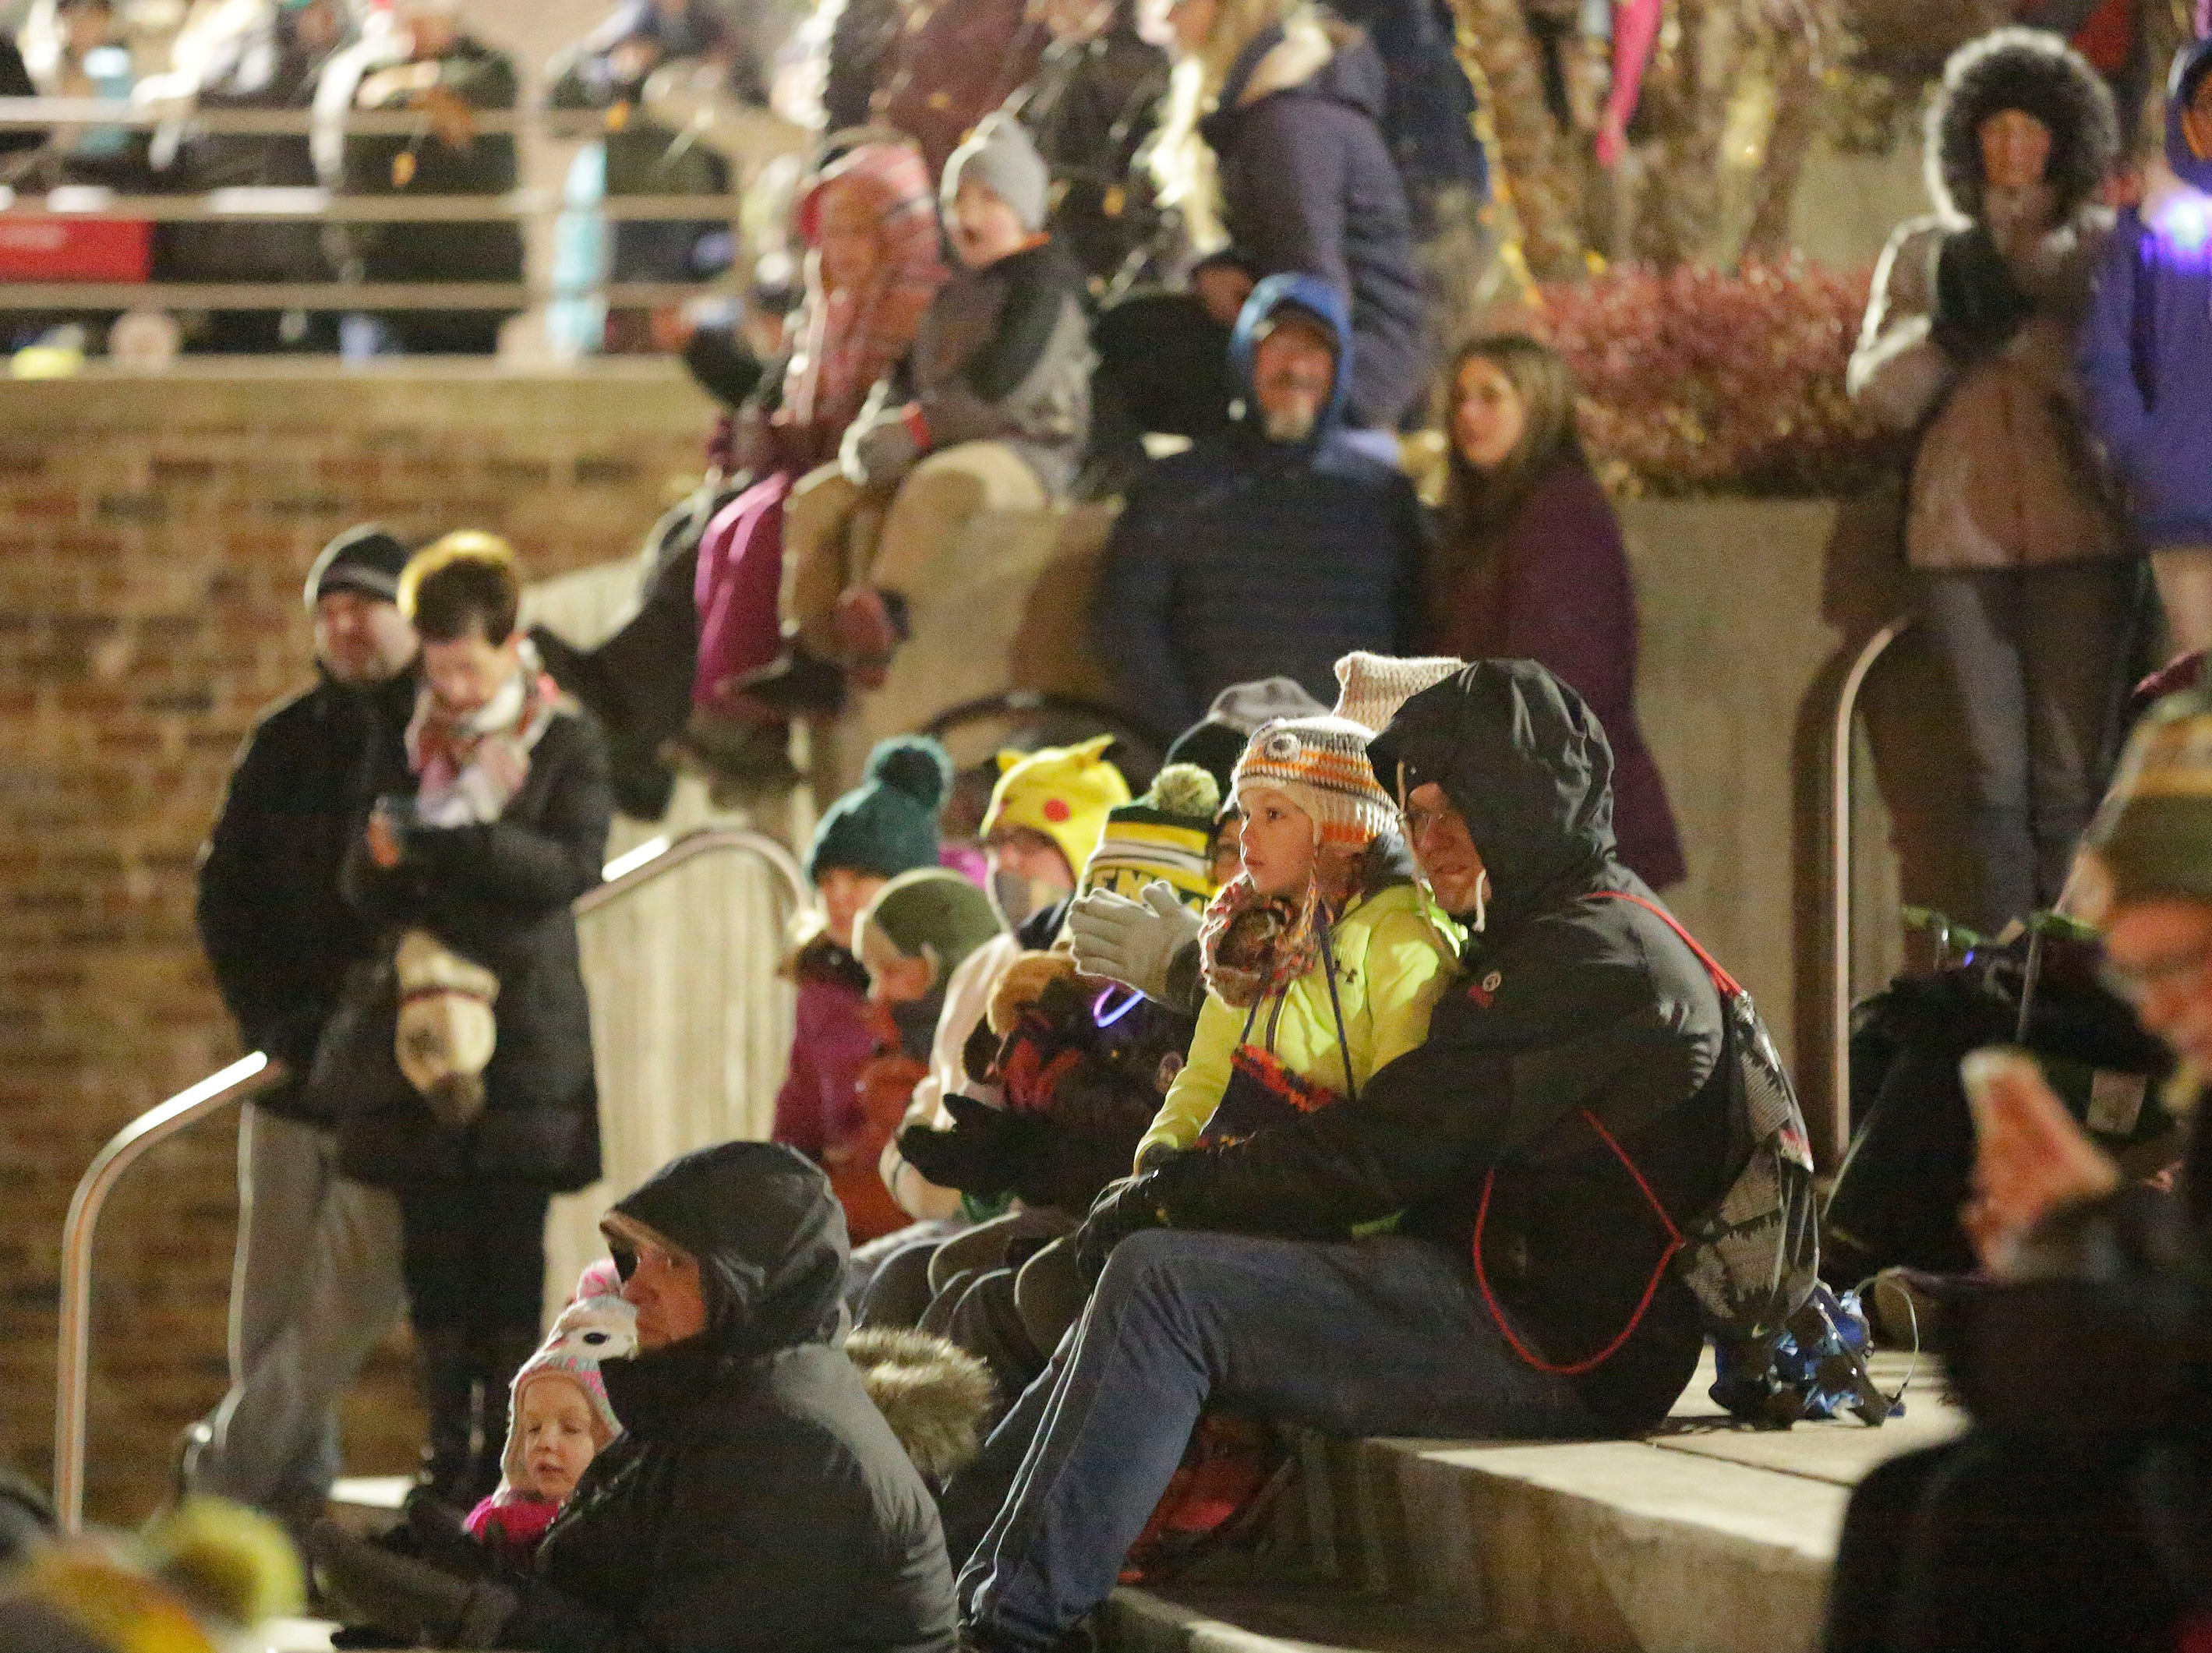 People wait for the tree lighting ceremony following the 26th Annual Jaycees Holiday Parade, Sunday, November 25, 2018 in Sheboygan, Wis.